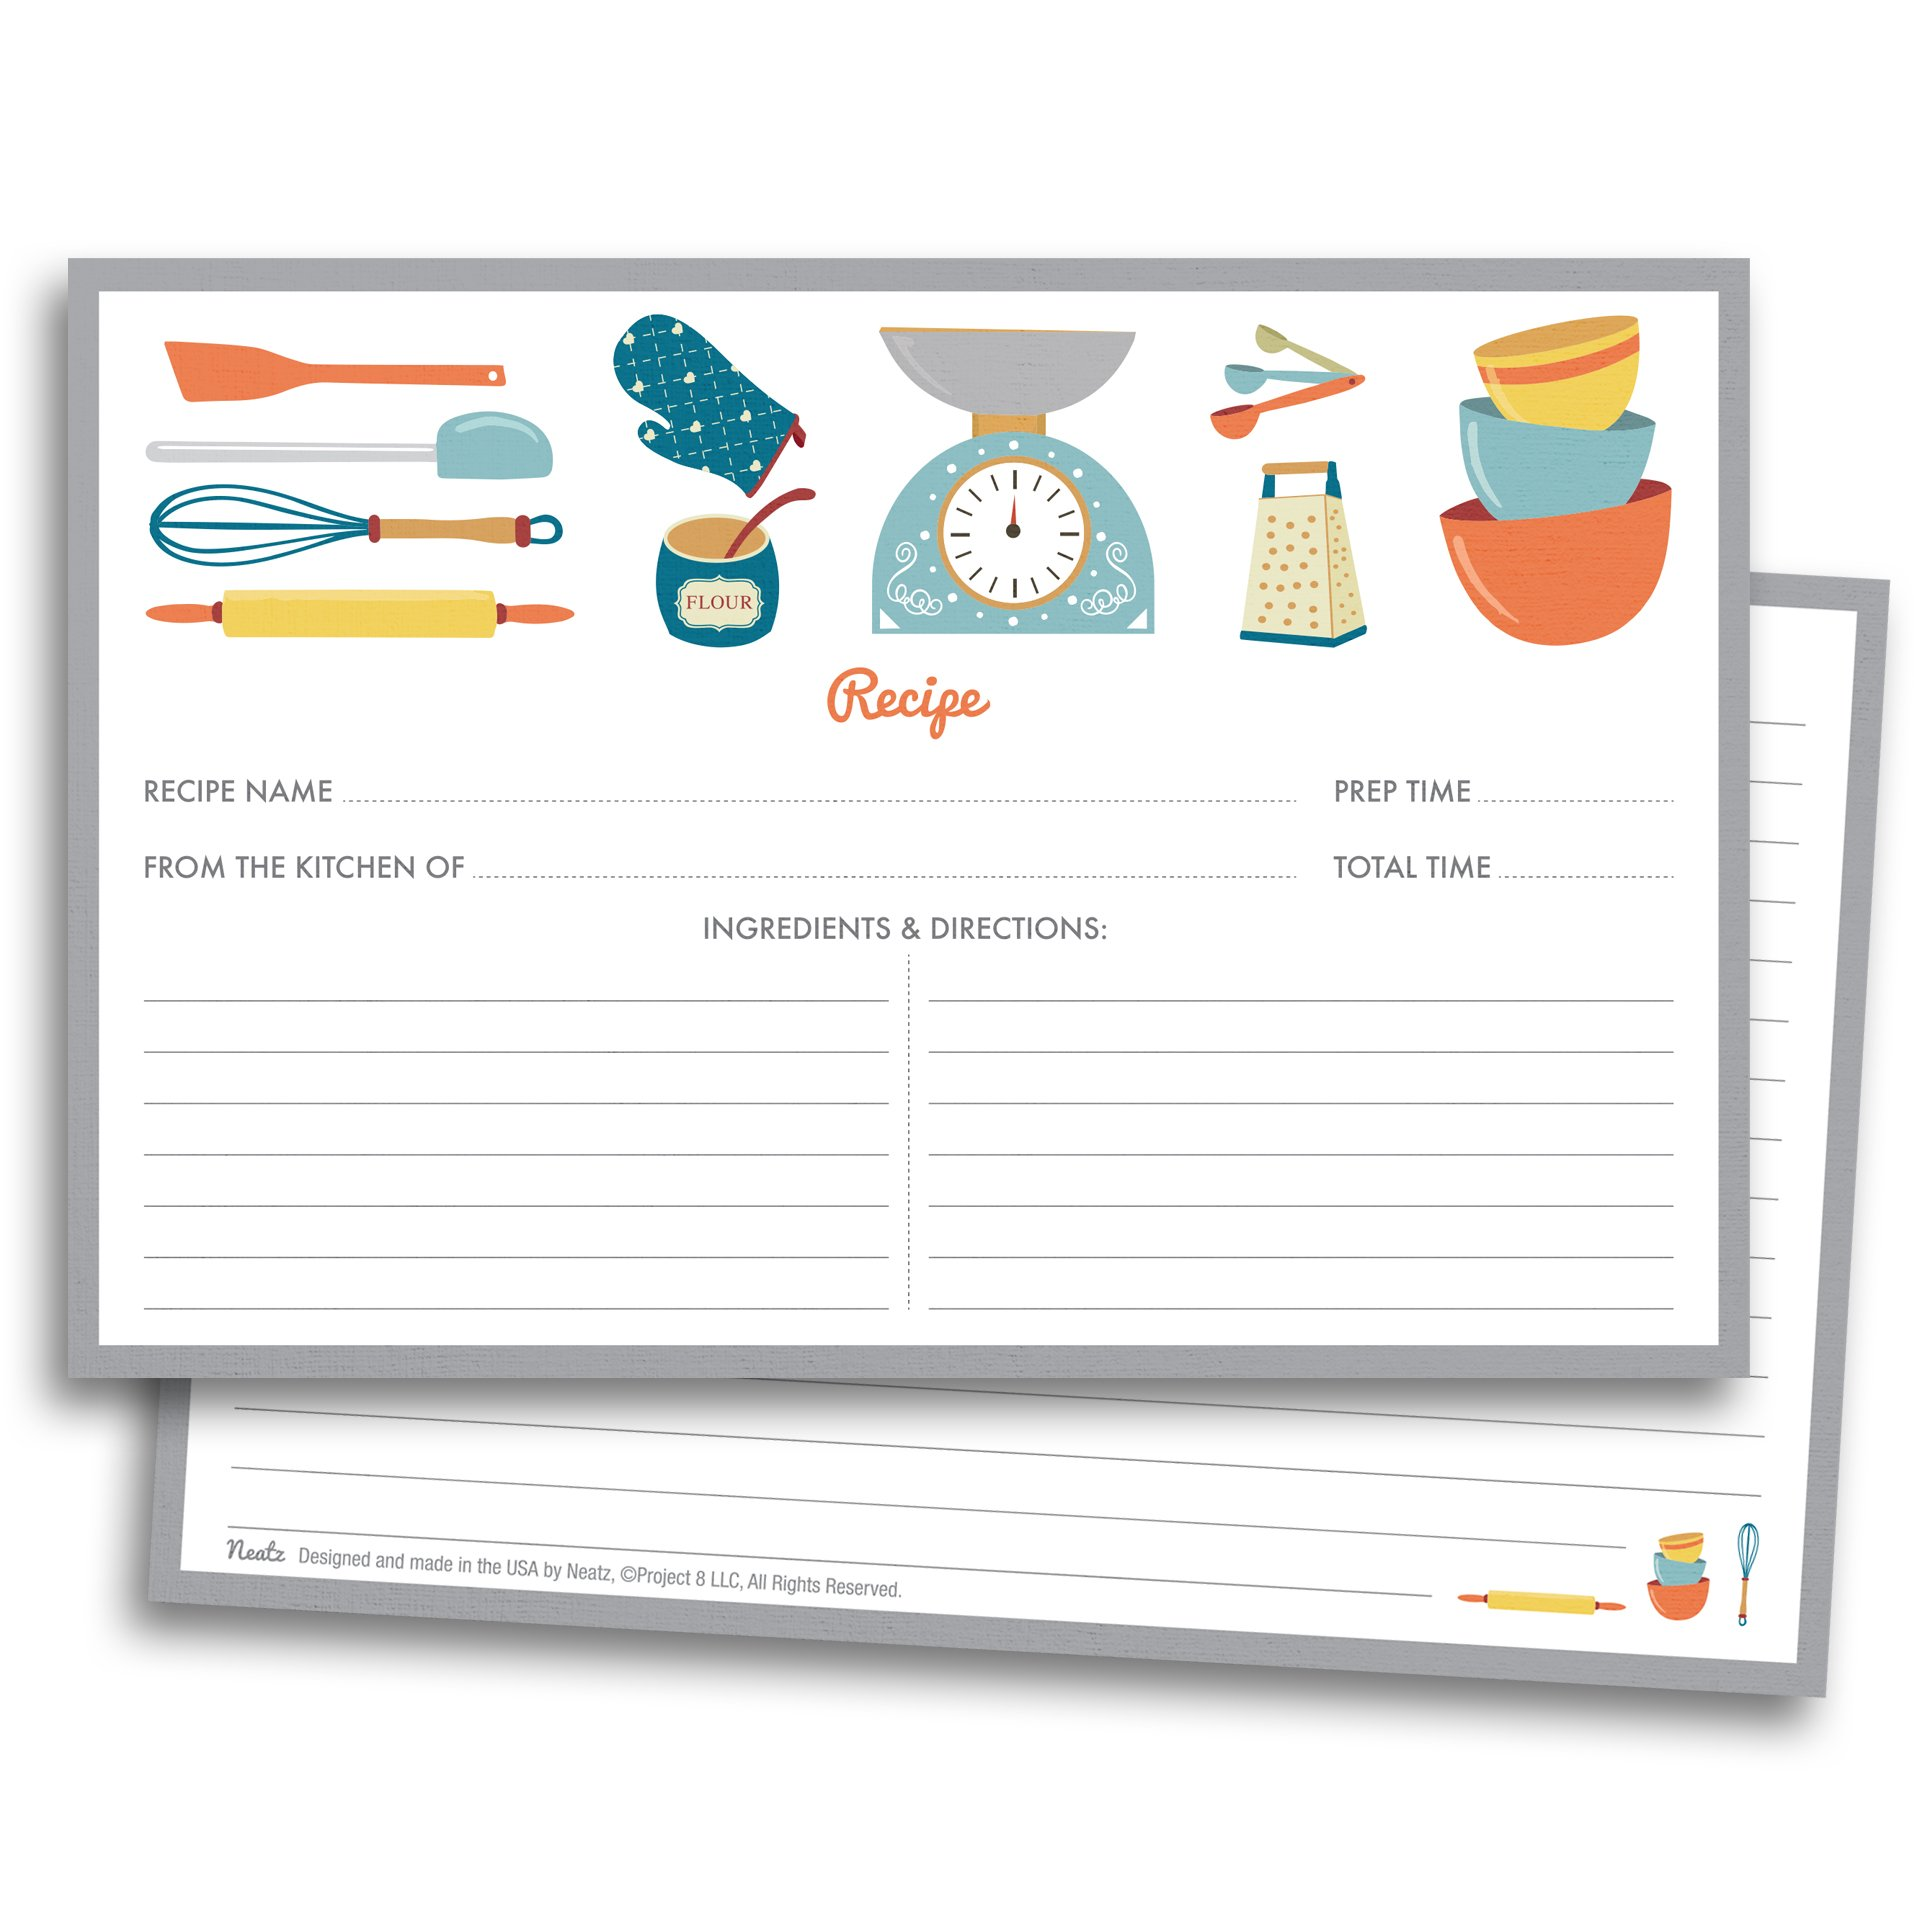 Chef's Recipe Cards - 50 Double Sided Cards, 4x6 inches. Thick Card Stock